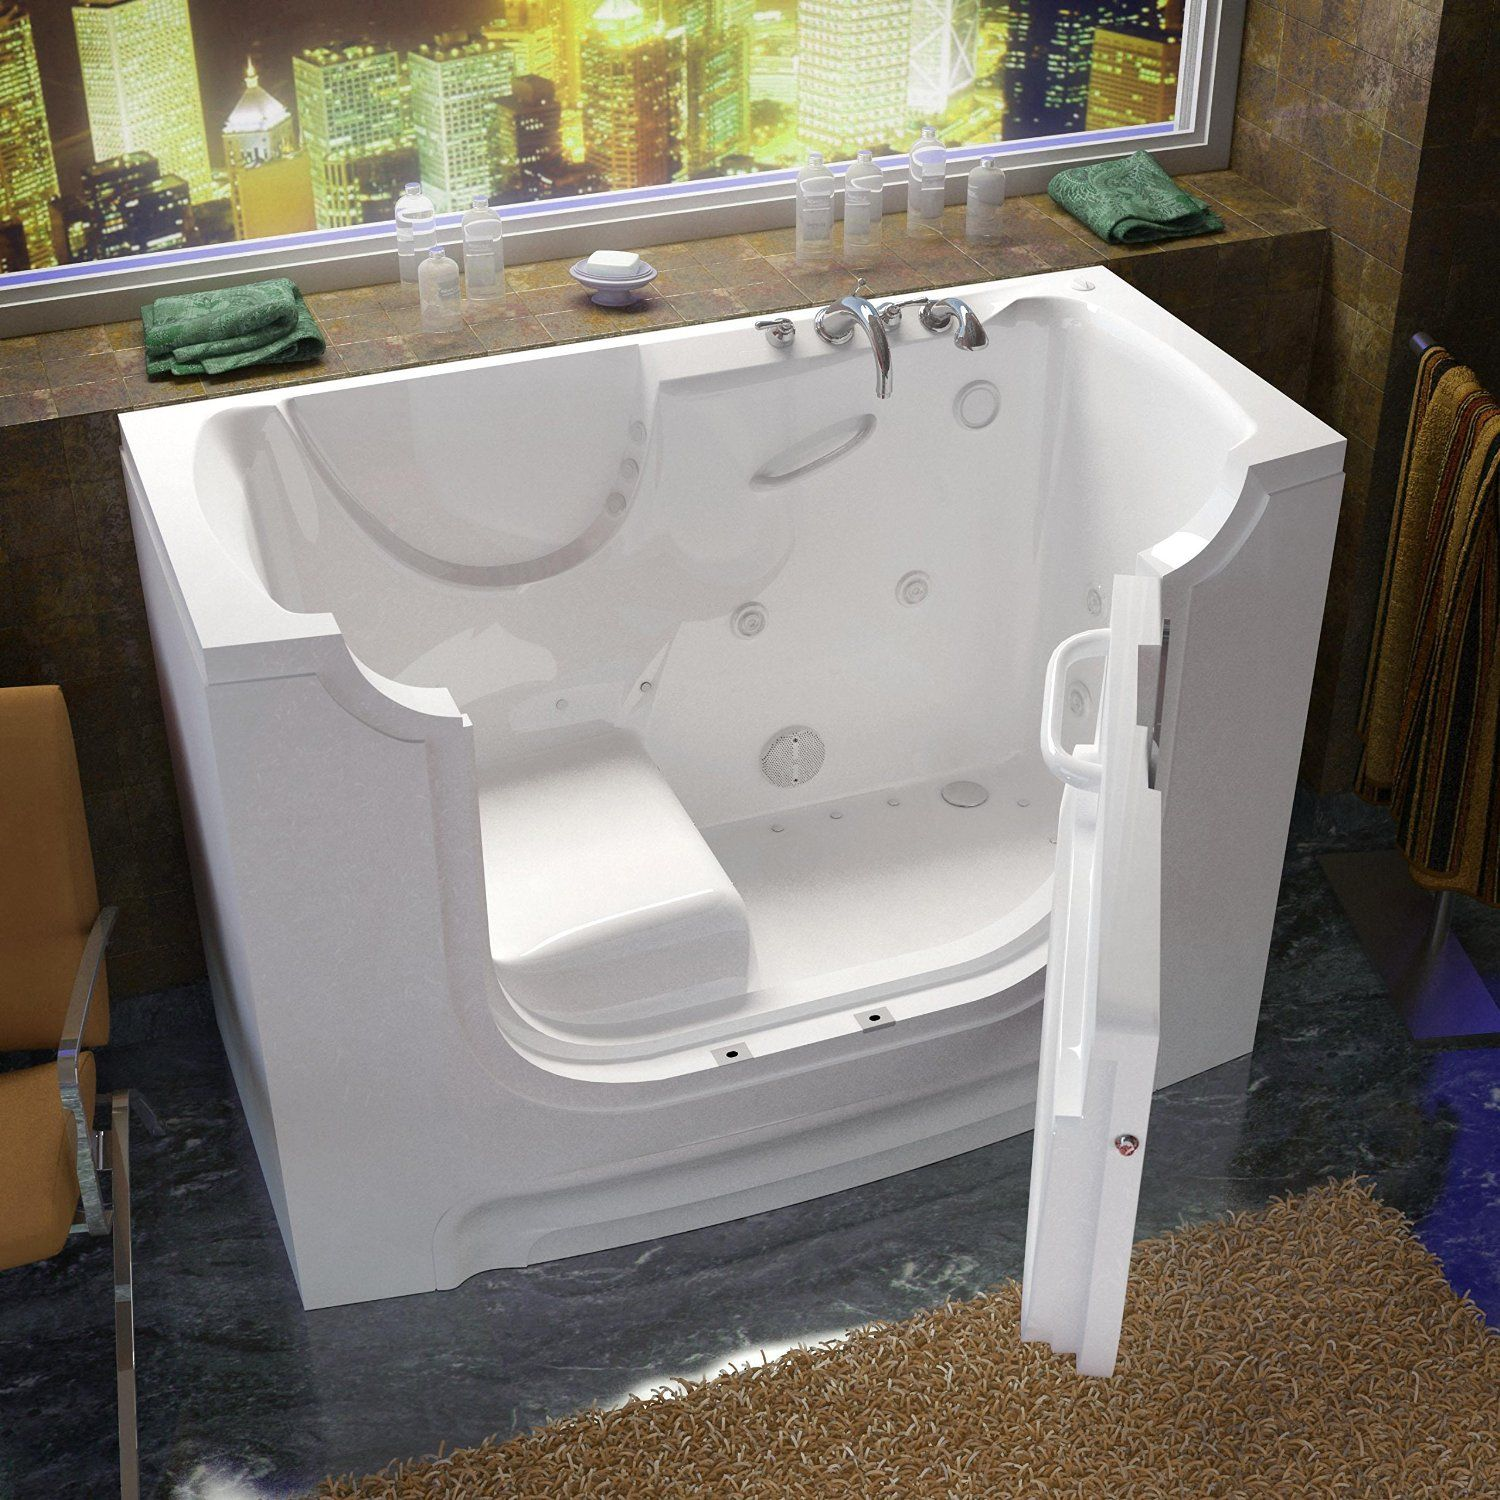 Venzi Bathing 30x60 Right Drain White Whirlpool & Air Jetted ...